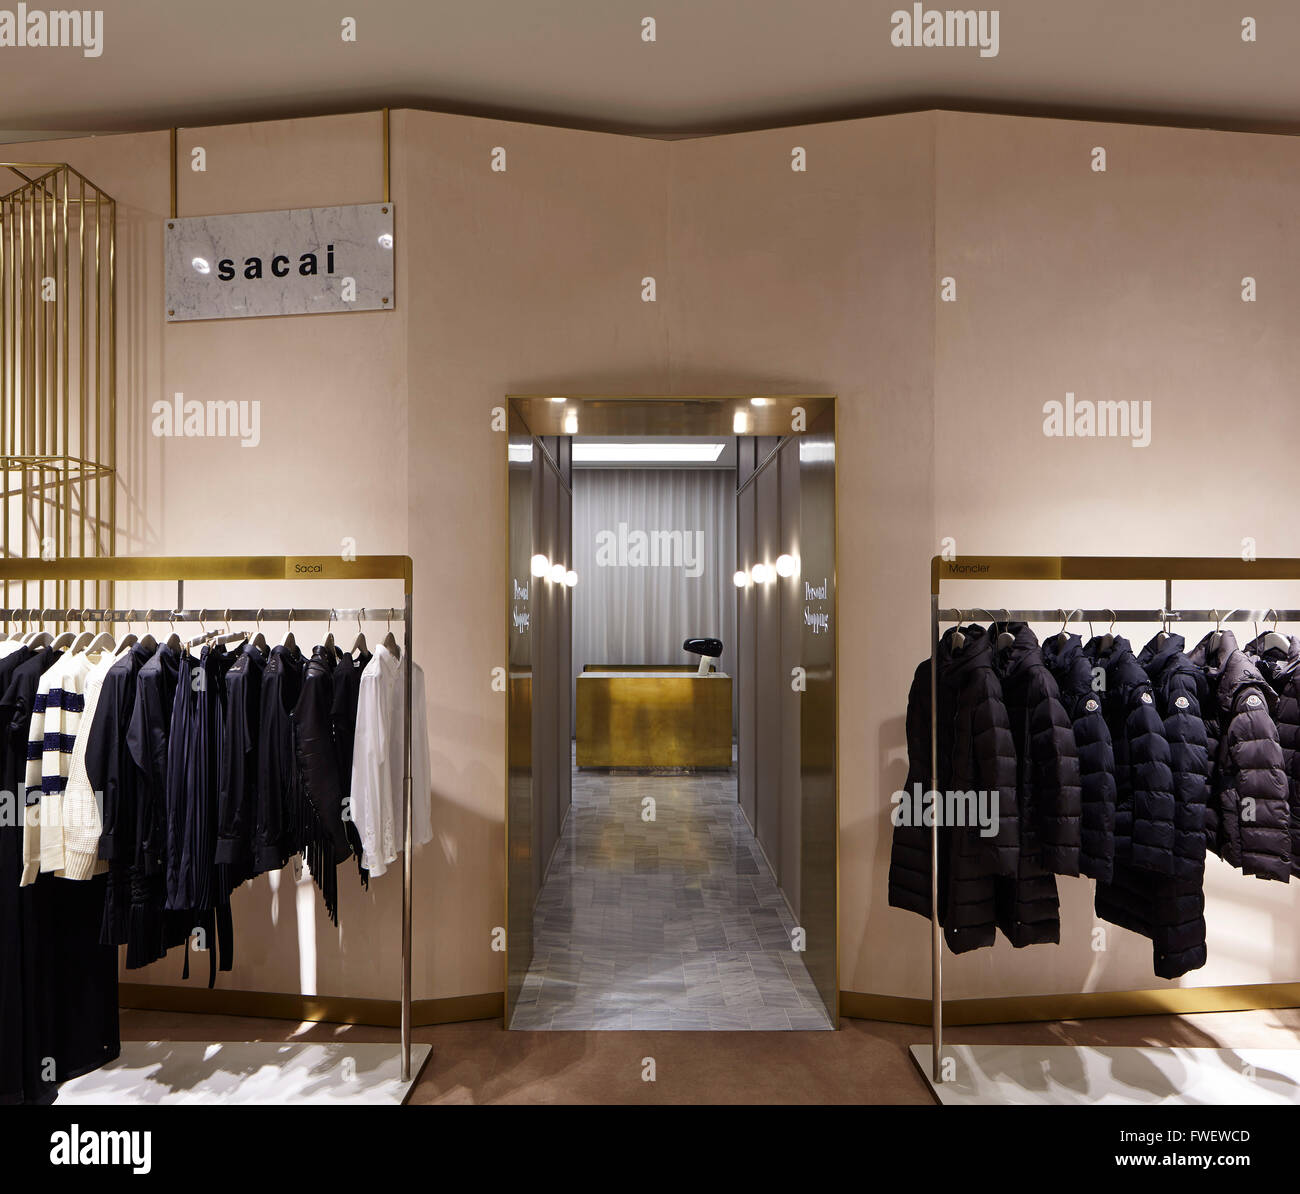 stock photo the personal shopping area showing concierge desk raw plaster faceted walls lined with jackets and coats selfridges manchest - Concierge Desk Design